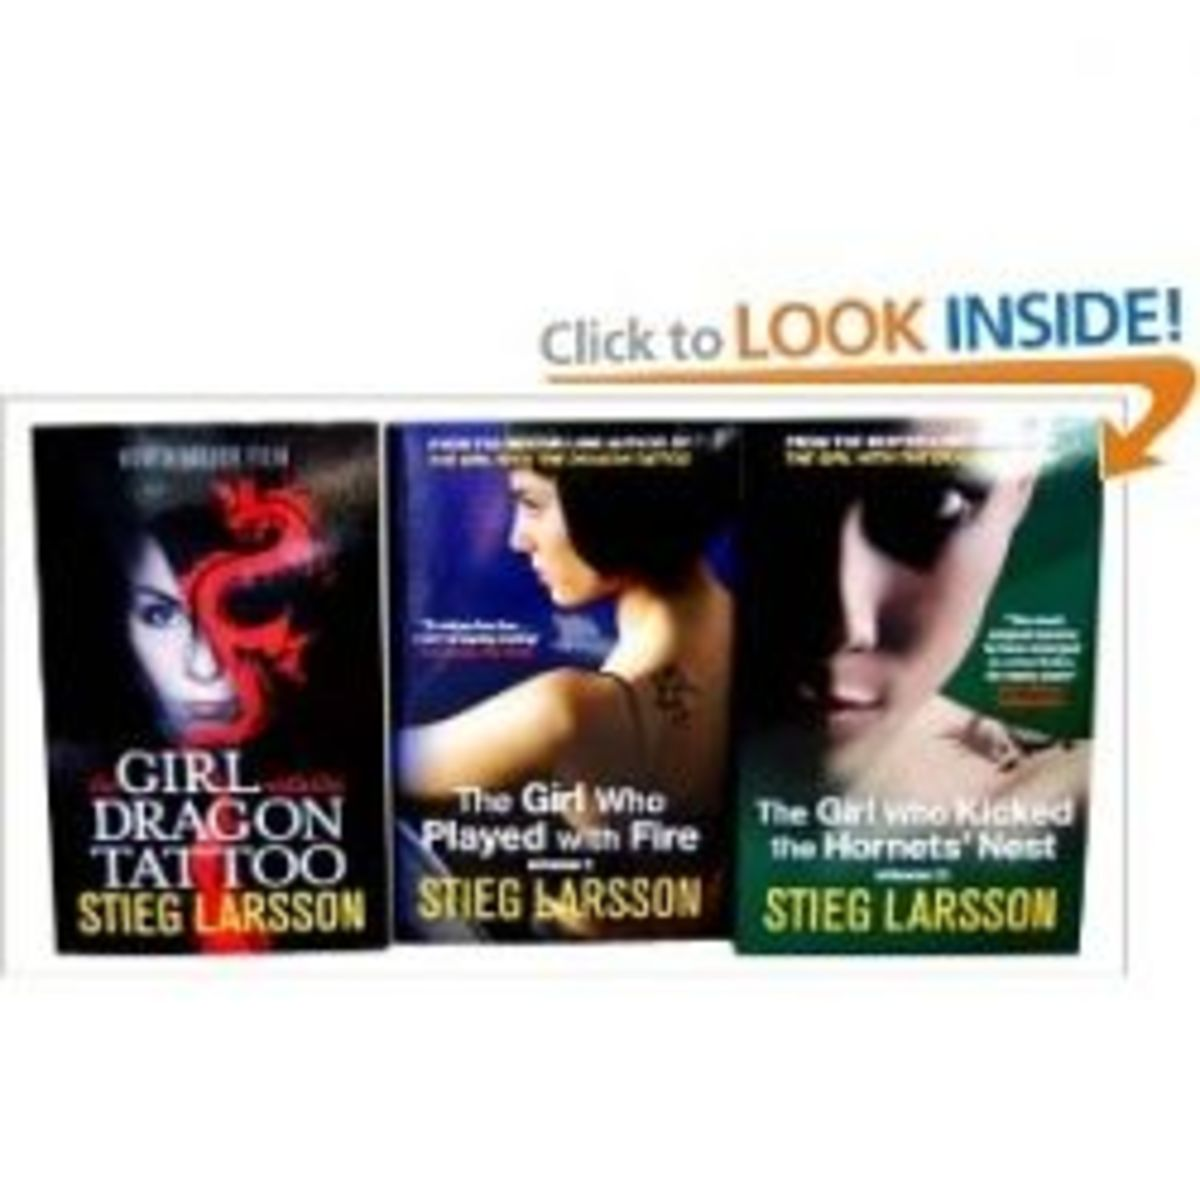 Meet Lisbeth Salander And Mikael Blomkvist in the Millennium Trilogy by Stieg Larsson.  The Girl With The Dragon Tattoo, The Girl Who Played With Fire, and The Girl Who Kicked The Hornet's Nest - Photo Credit Amazon.